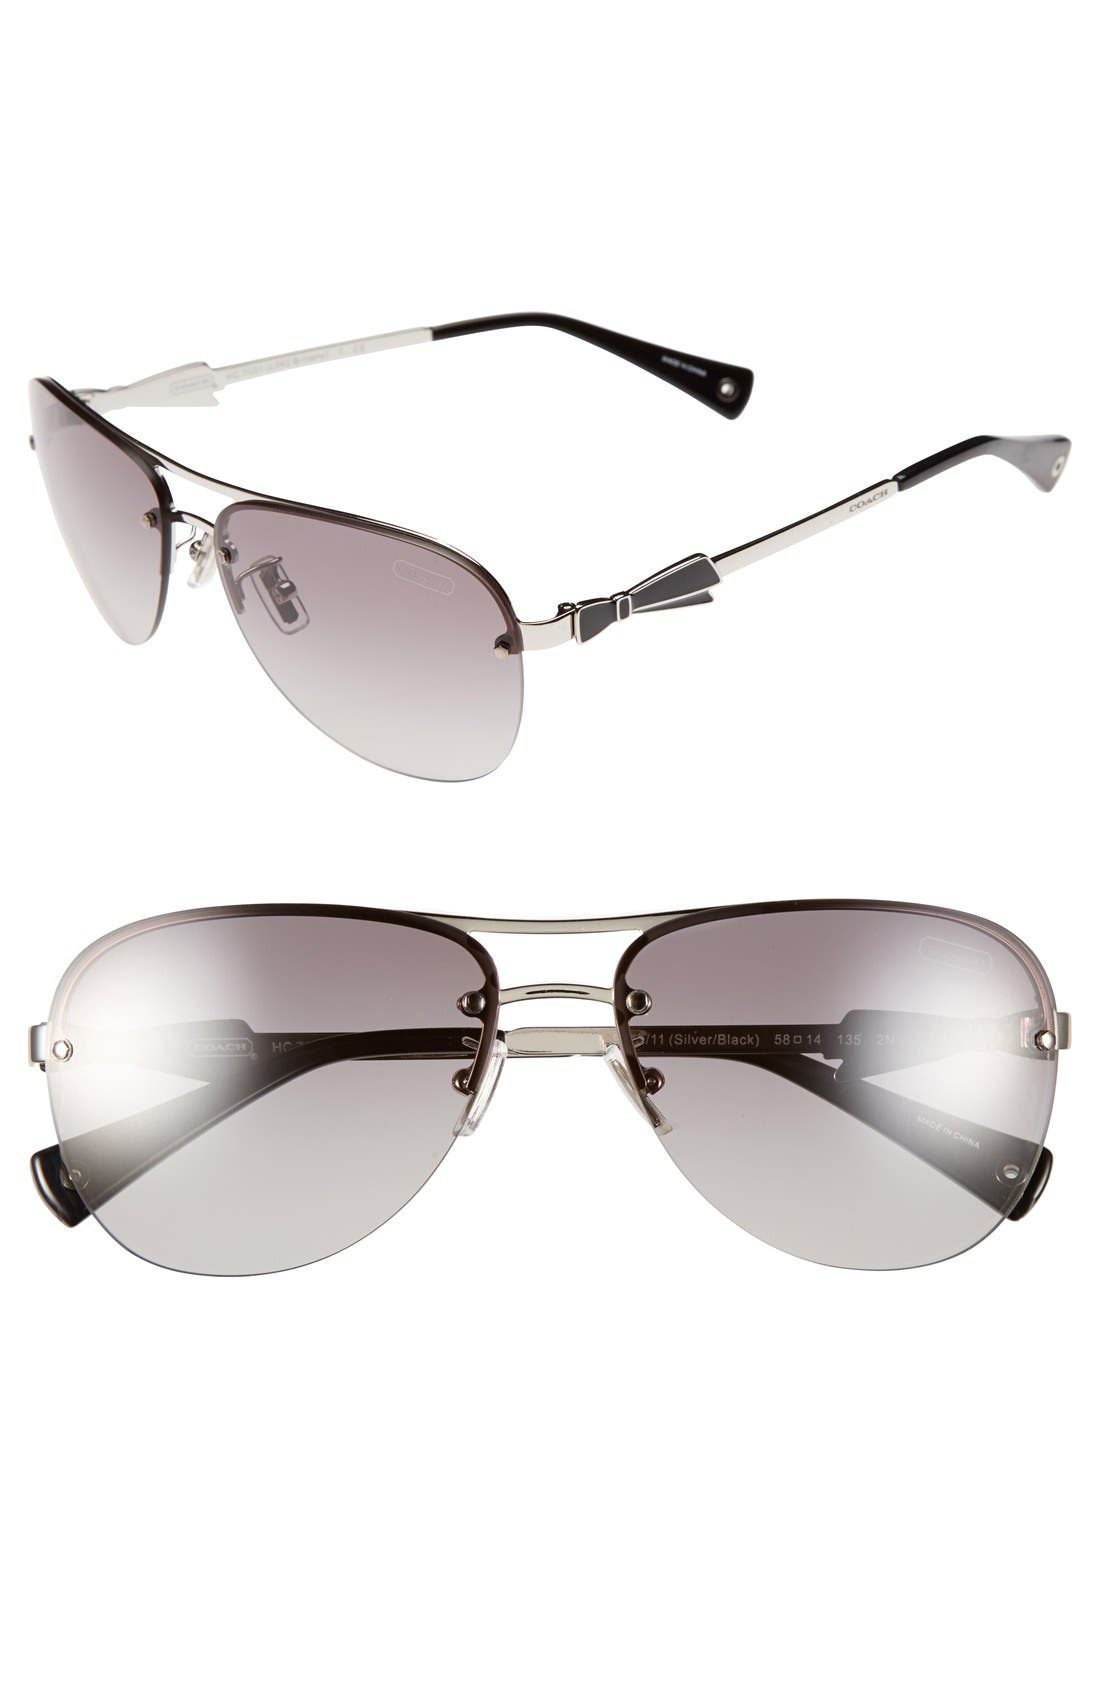 Alternate Image 1 Selected - COACH 58mm Aviator Sunglasses